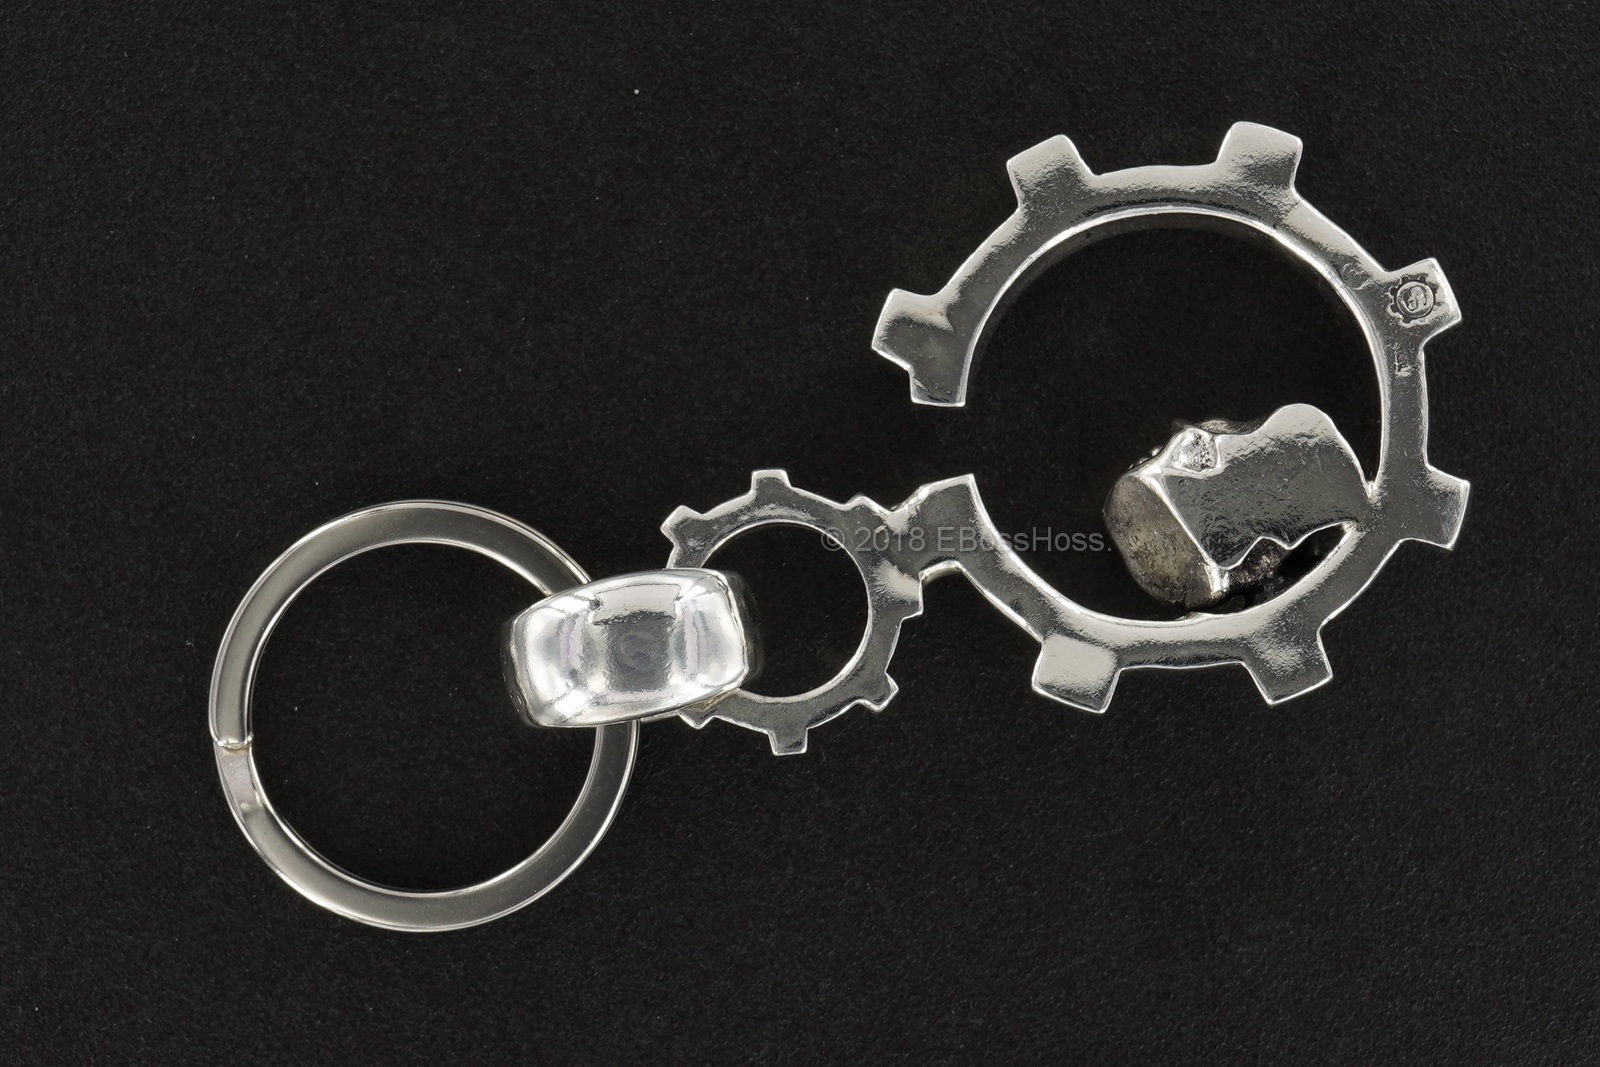 Starlingear Custom Sterling-Silver Slickster-Gear Keeper Key Chain